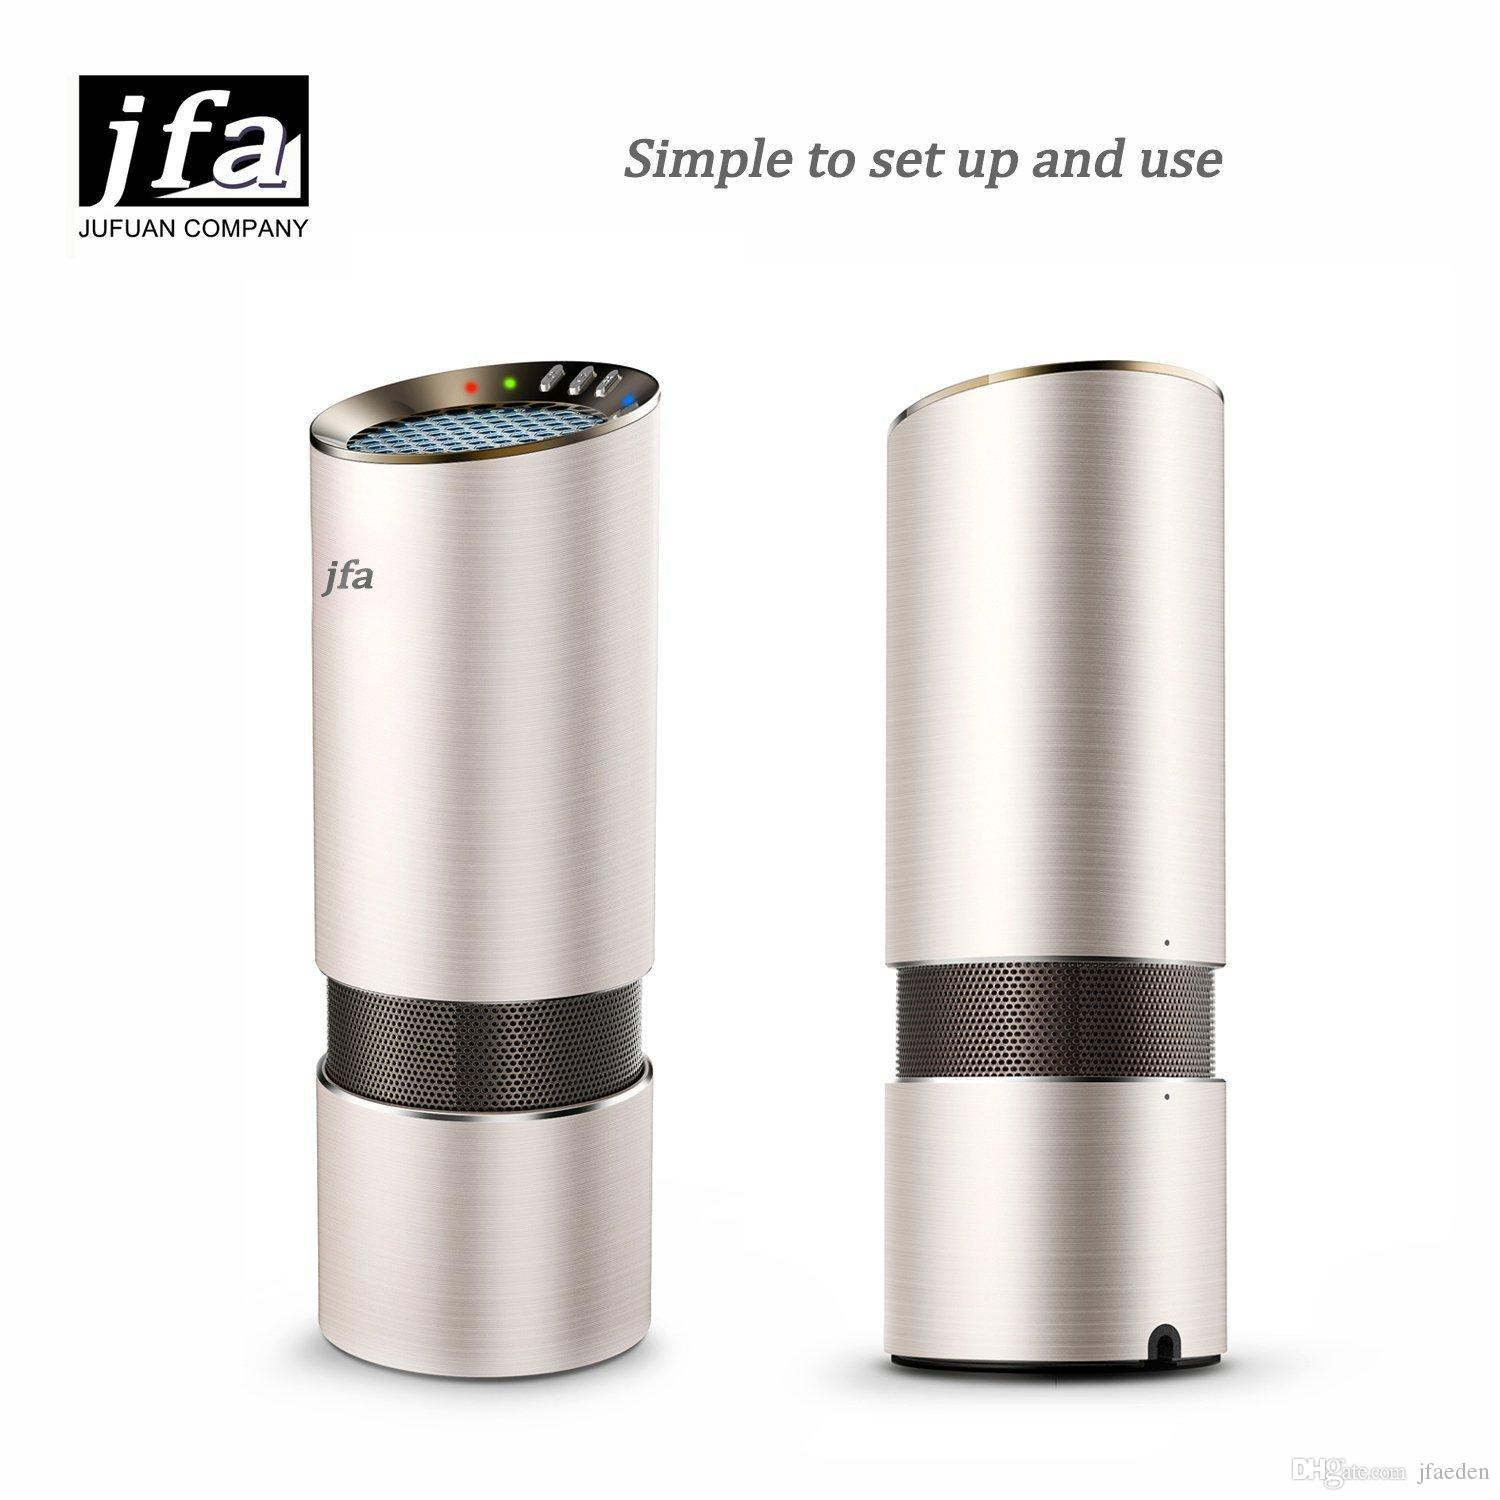 car air purifier jfa smart car air ionizer ionic purifier odor eliminator auto air cleaner car freshener remove odor smoke dust with d from